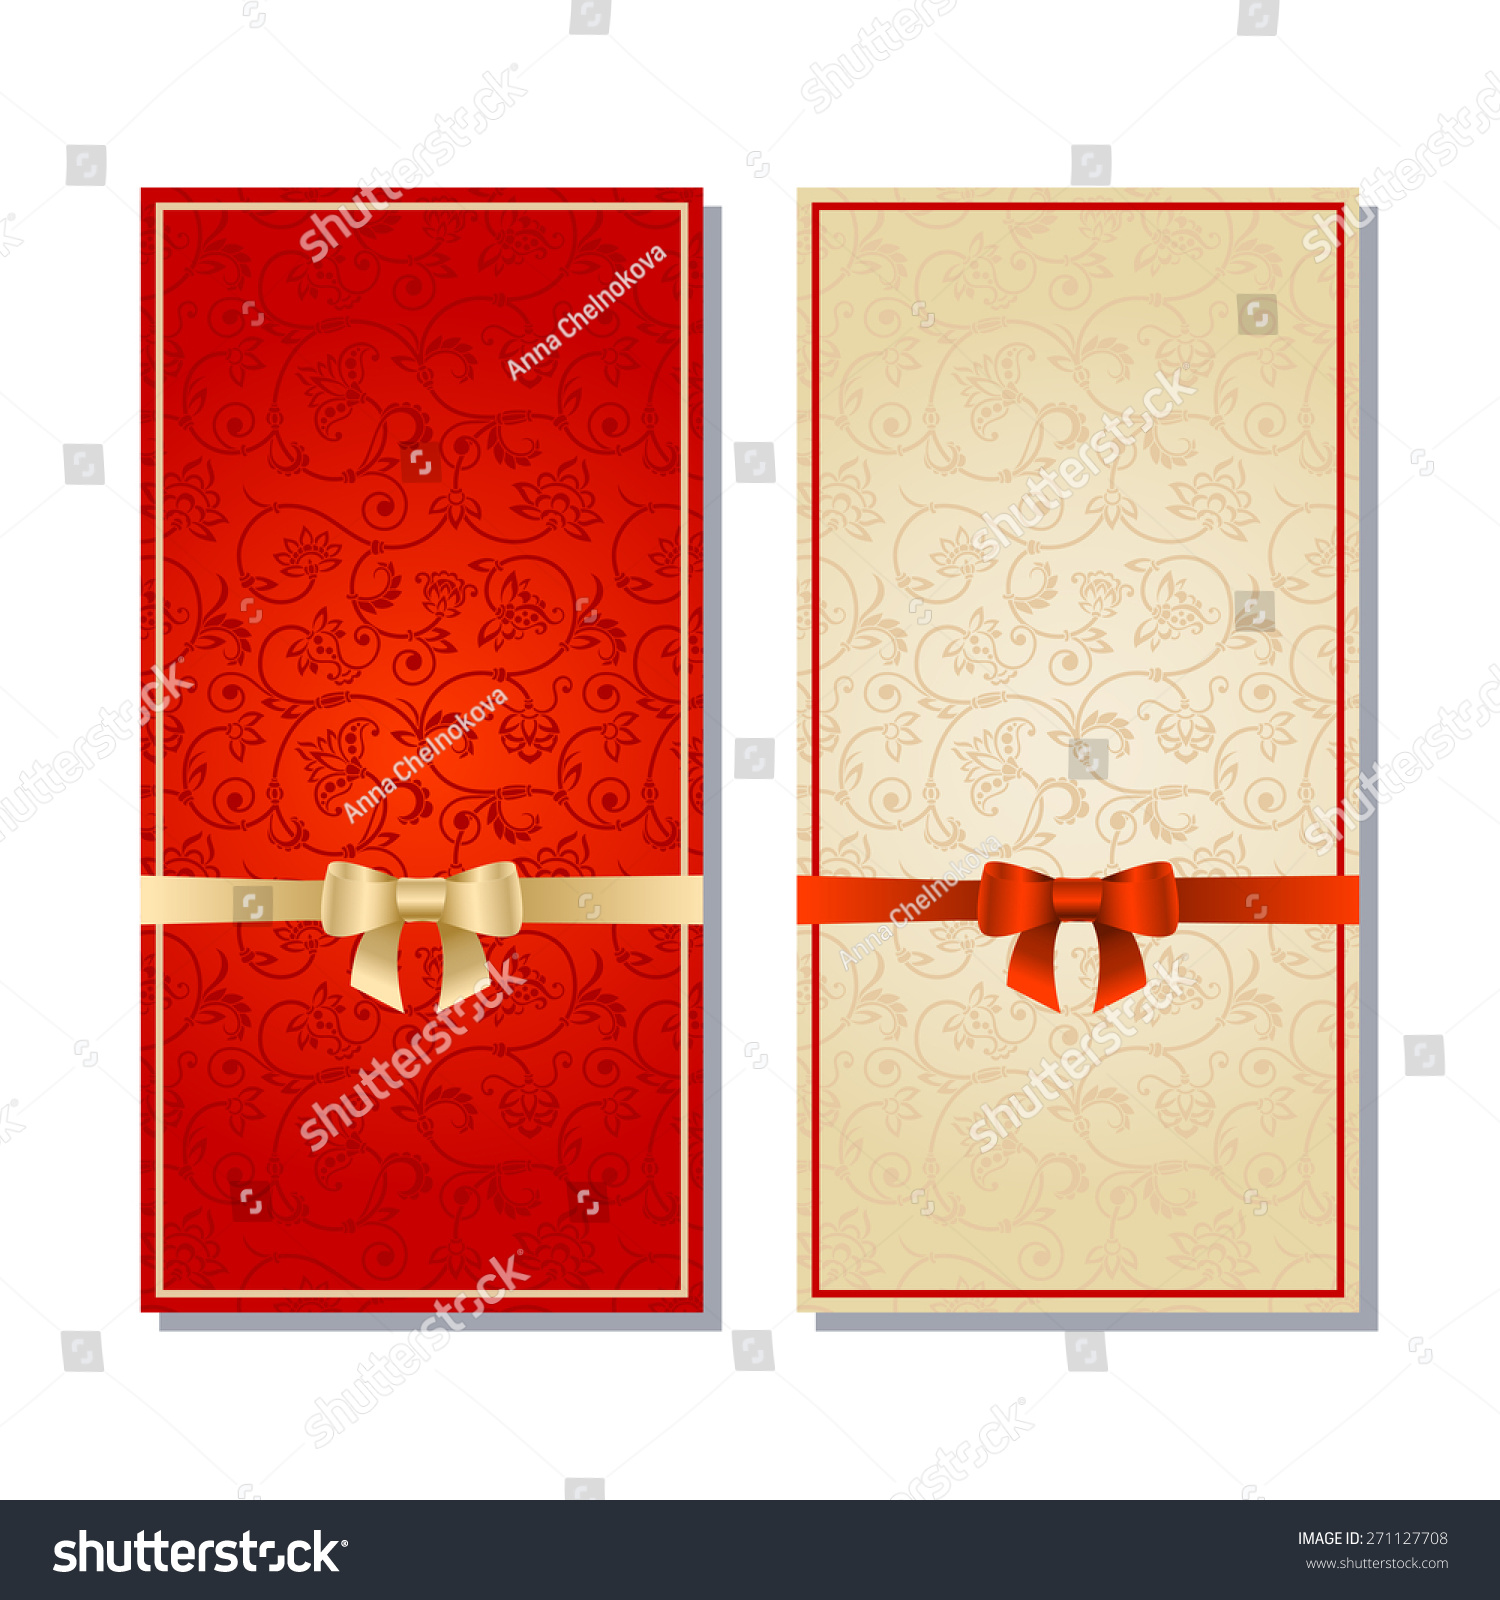 Vector Set Red Floral Decorative Background Stock Vector (Royalty ...